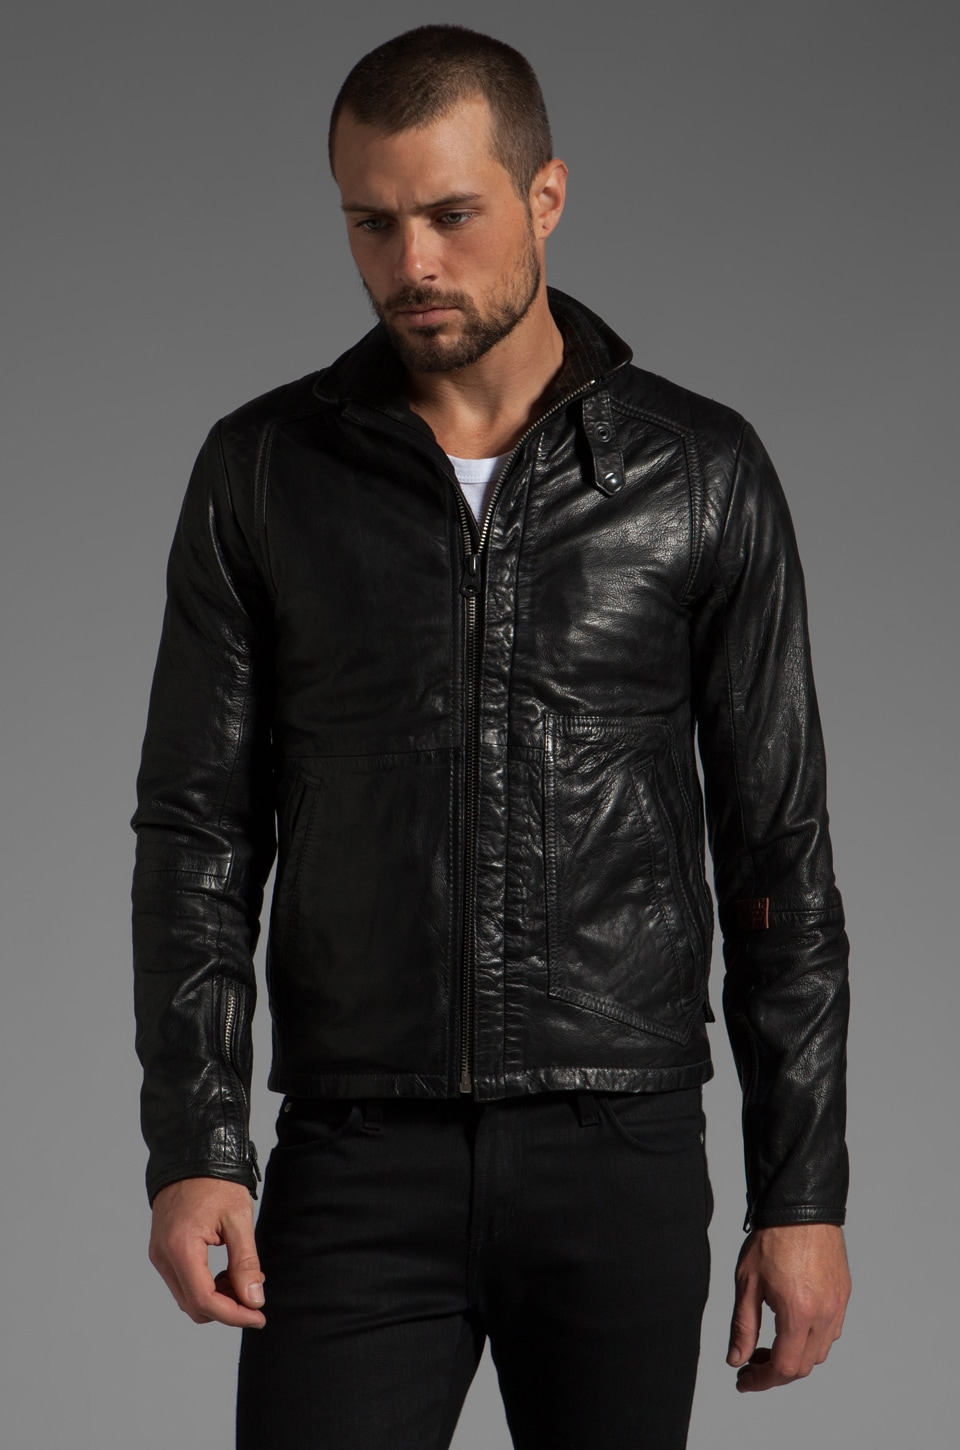 G-Star RCO Brando Leather Jacket in Black